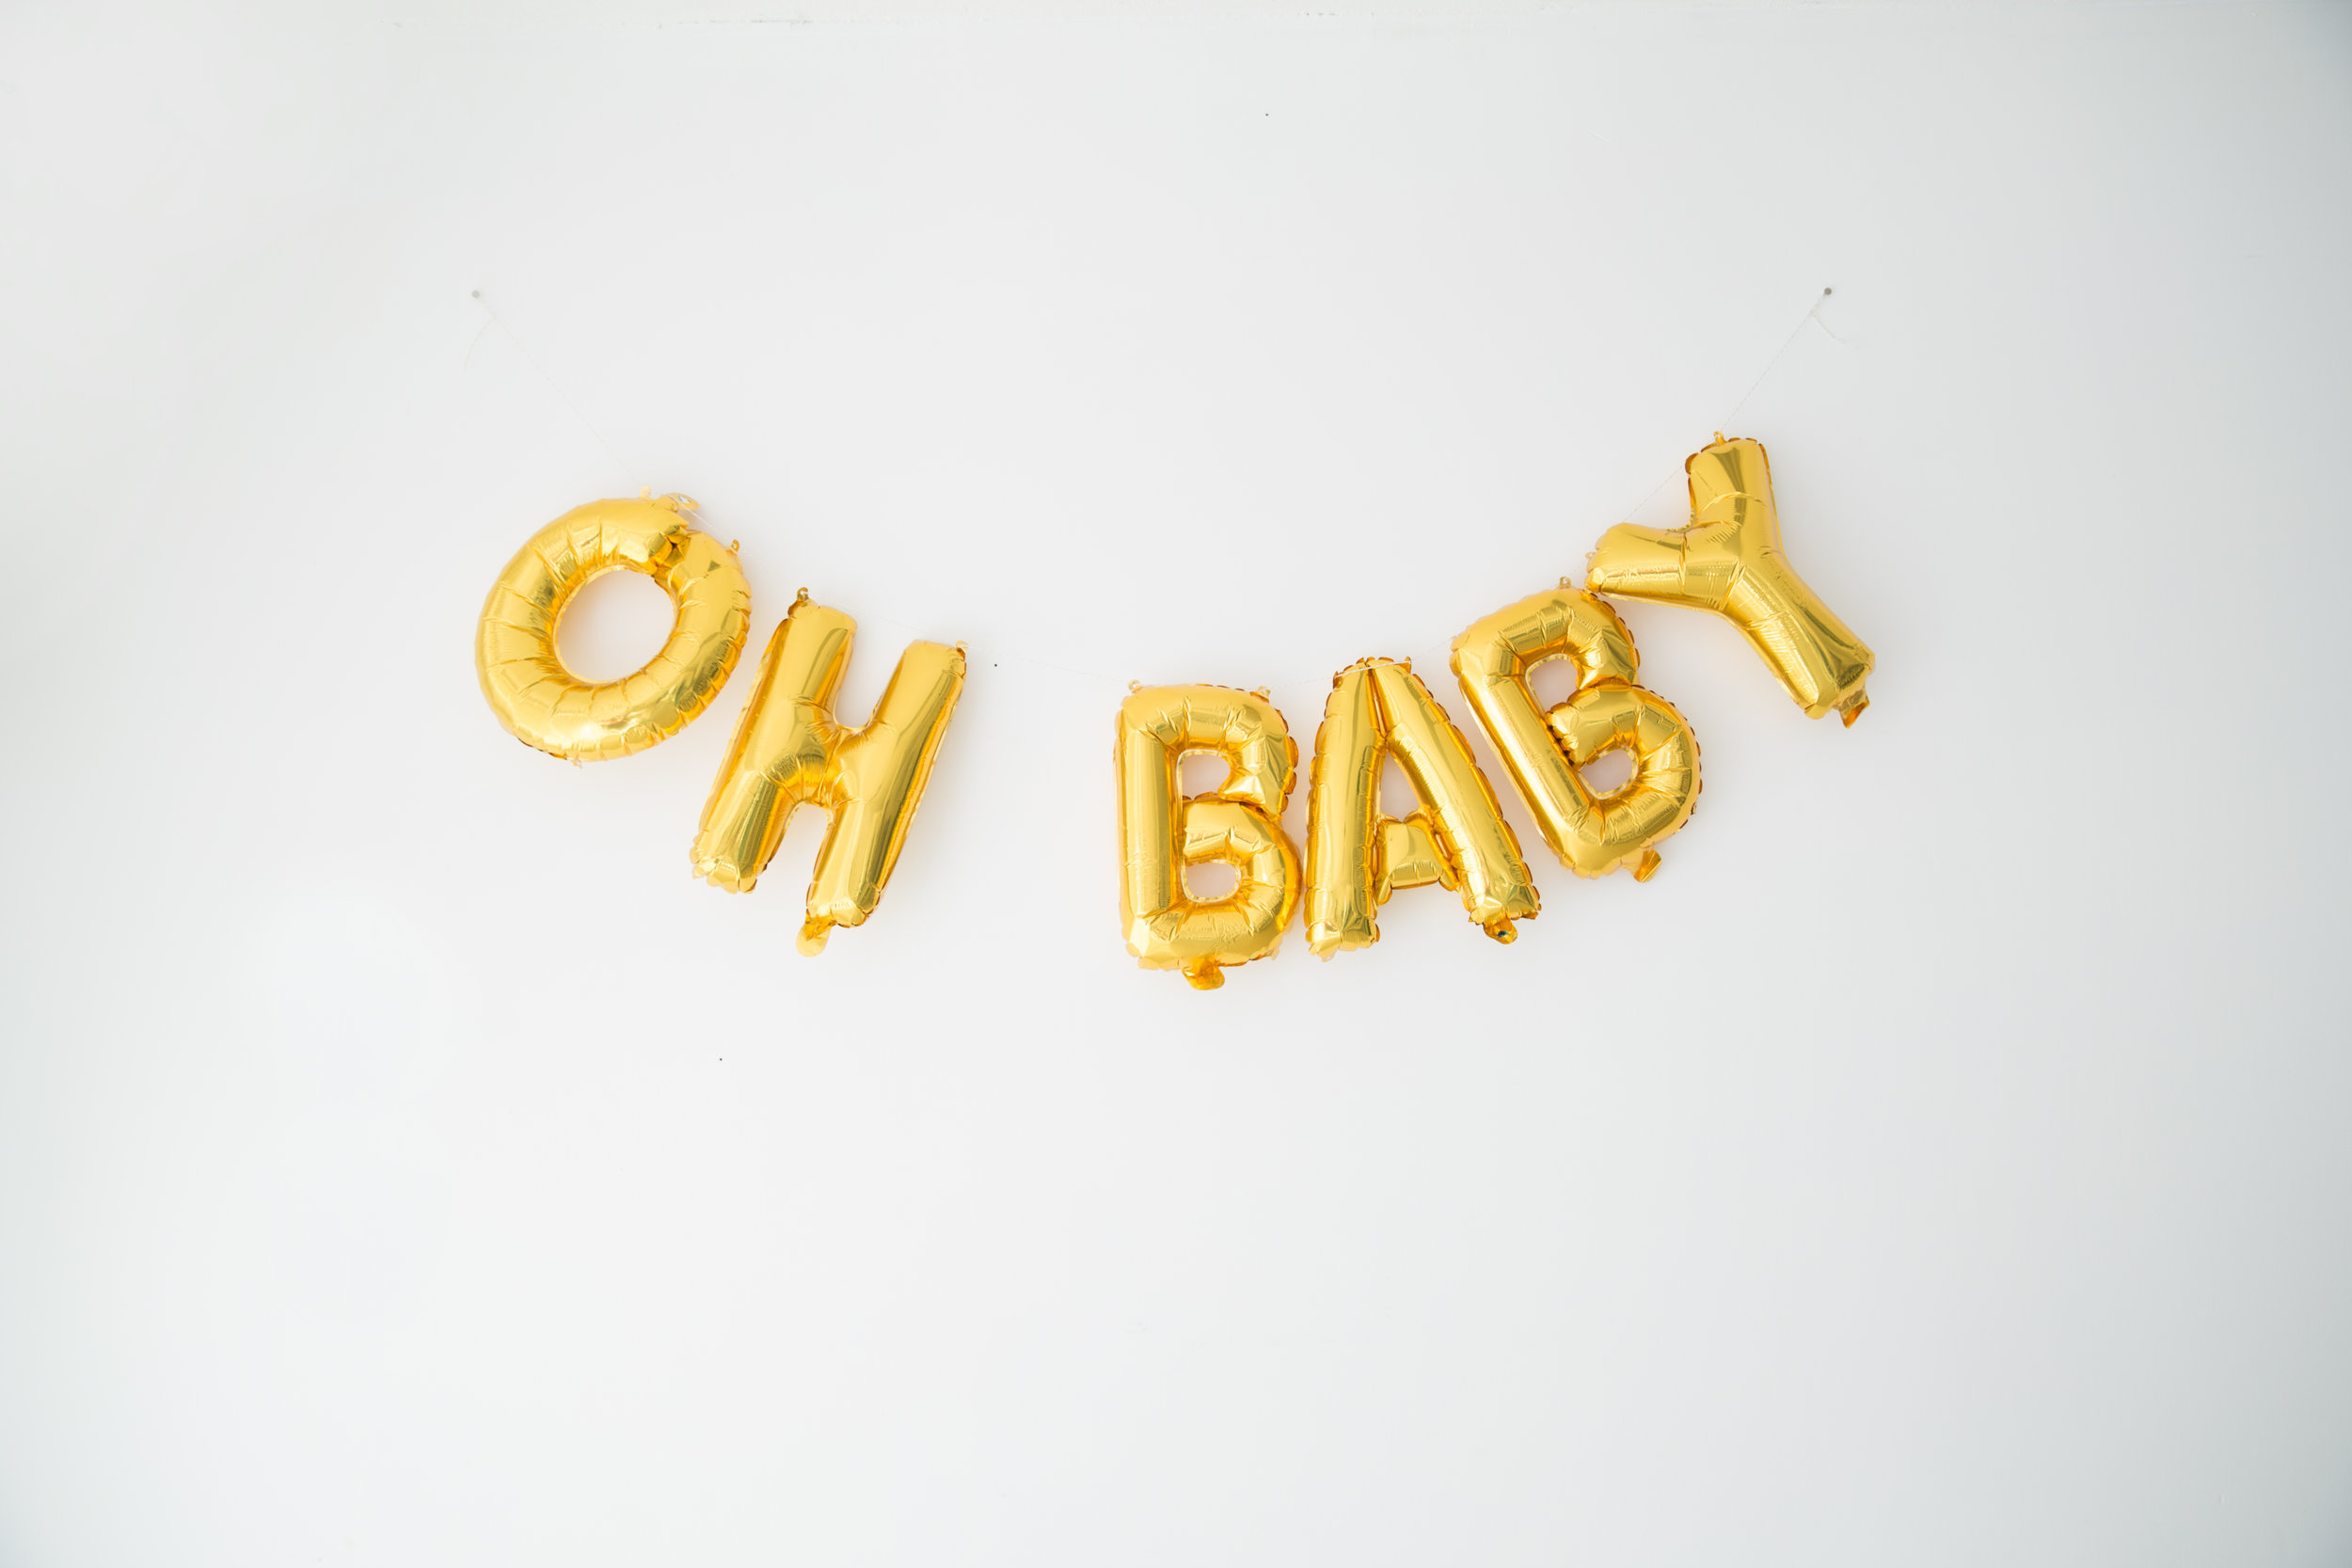 oh-baby-gold-balloons-in-burlington-new-jersey-photo-studio